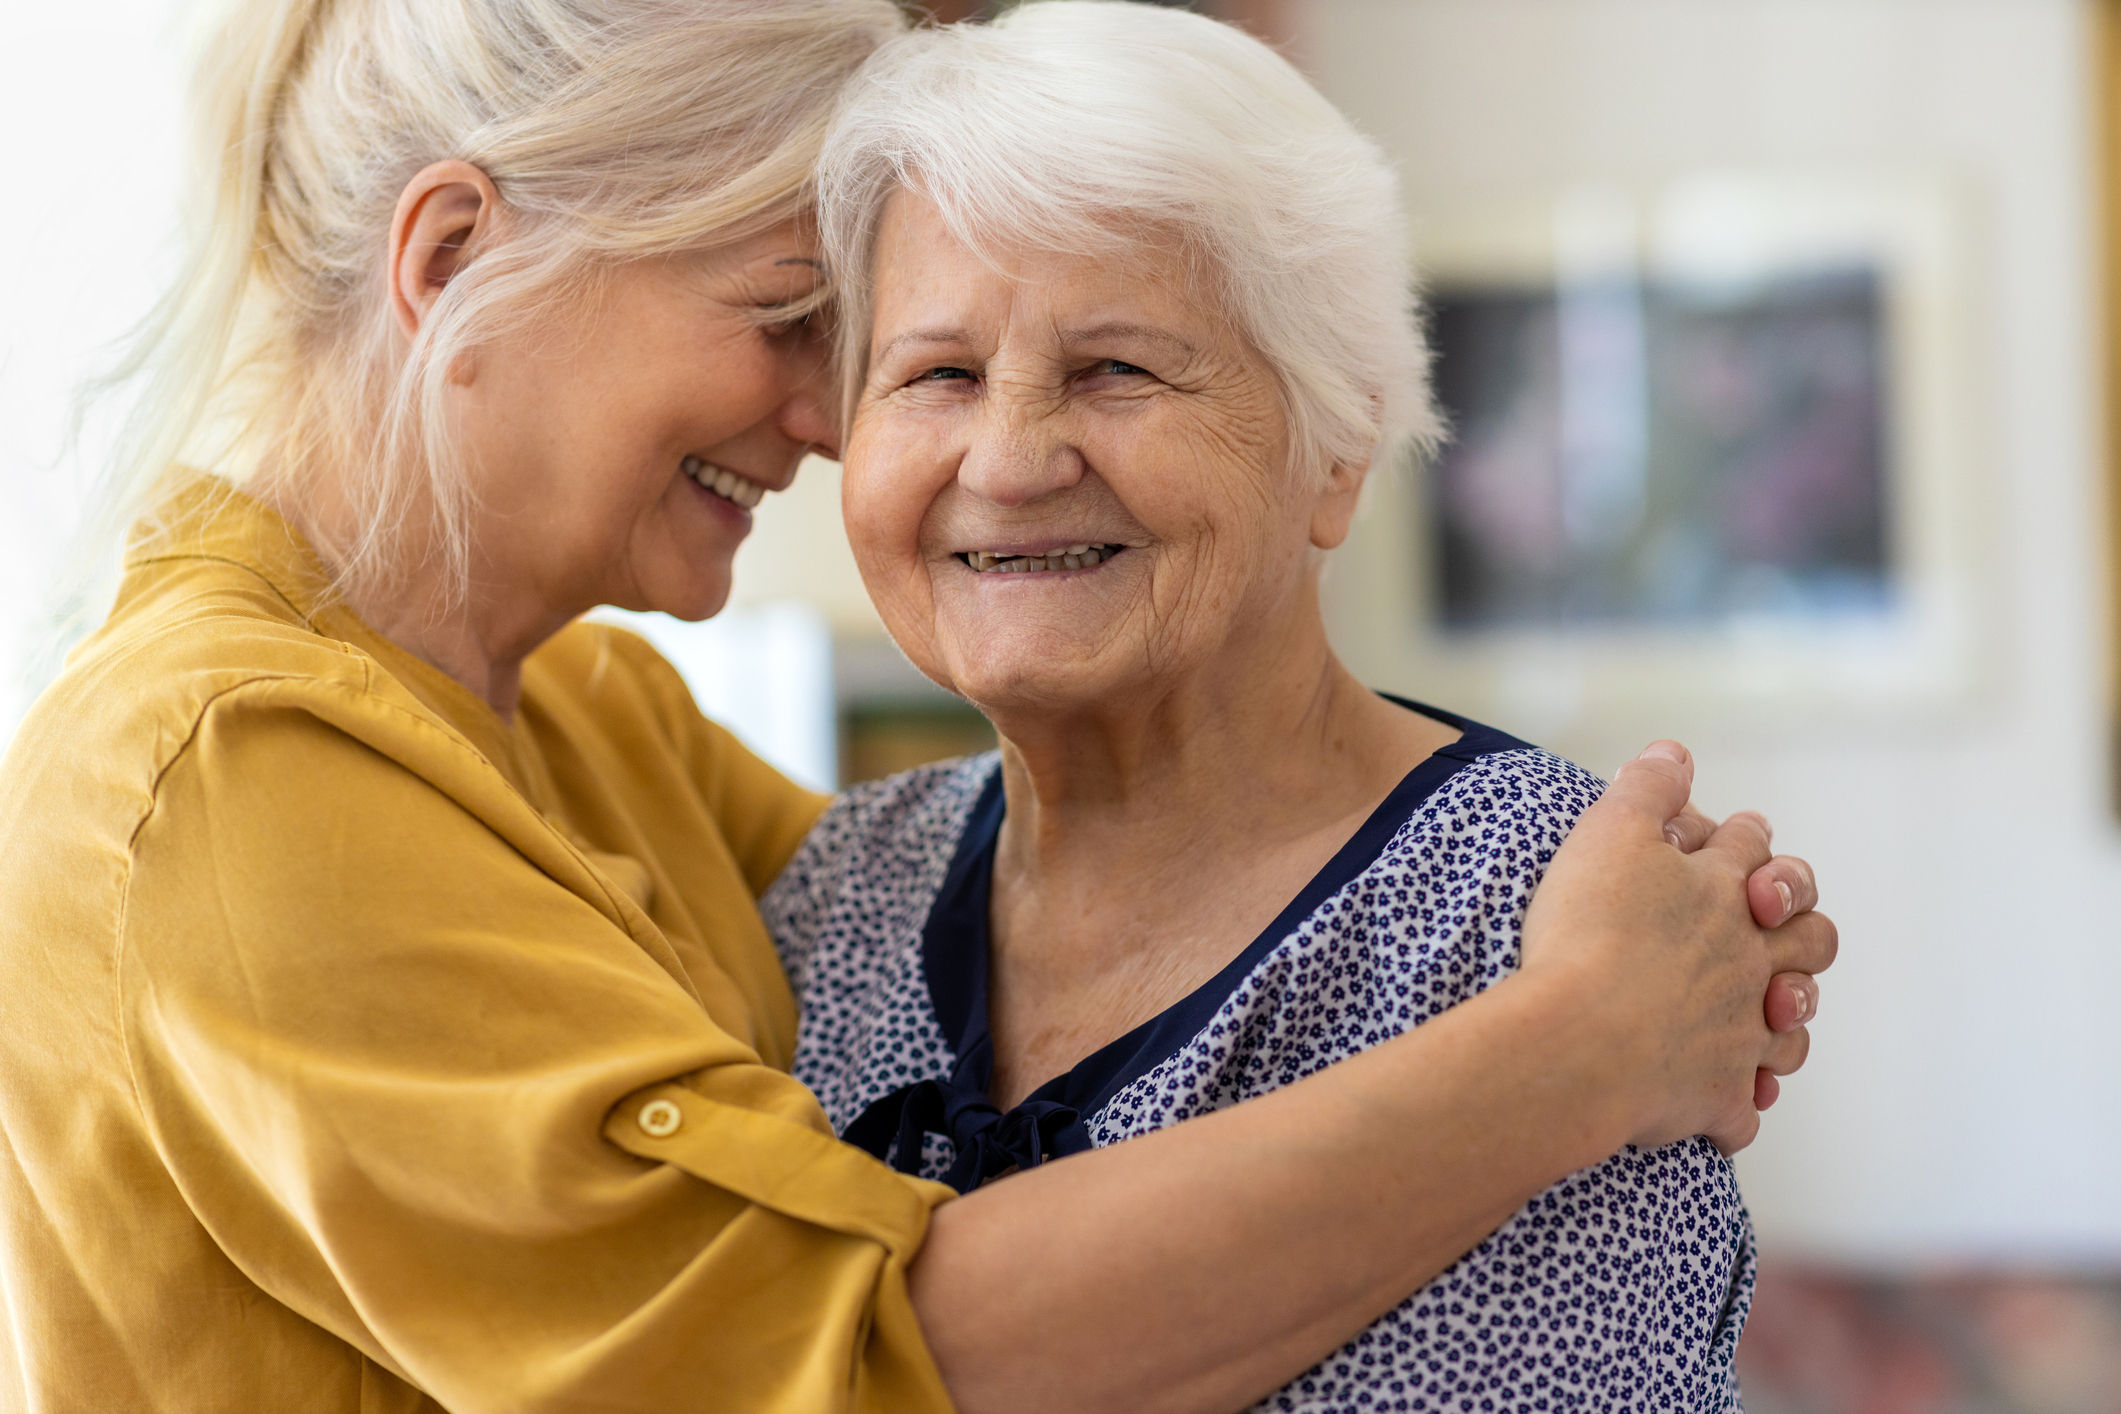 Woman embracing her elderly mother